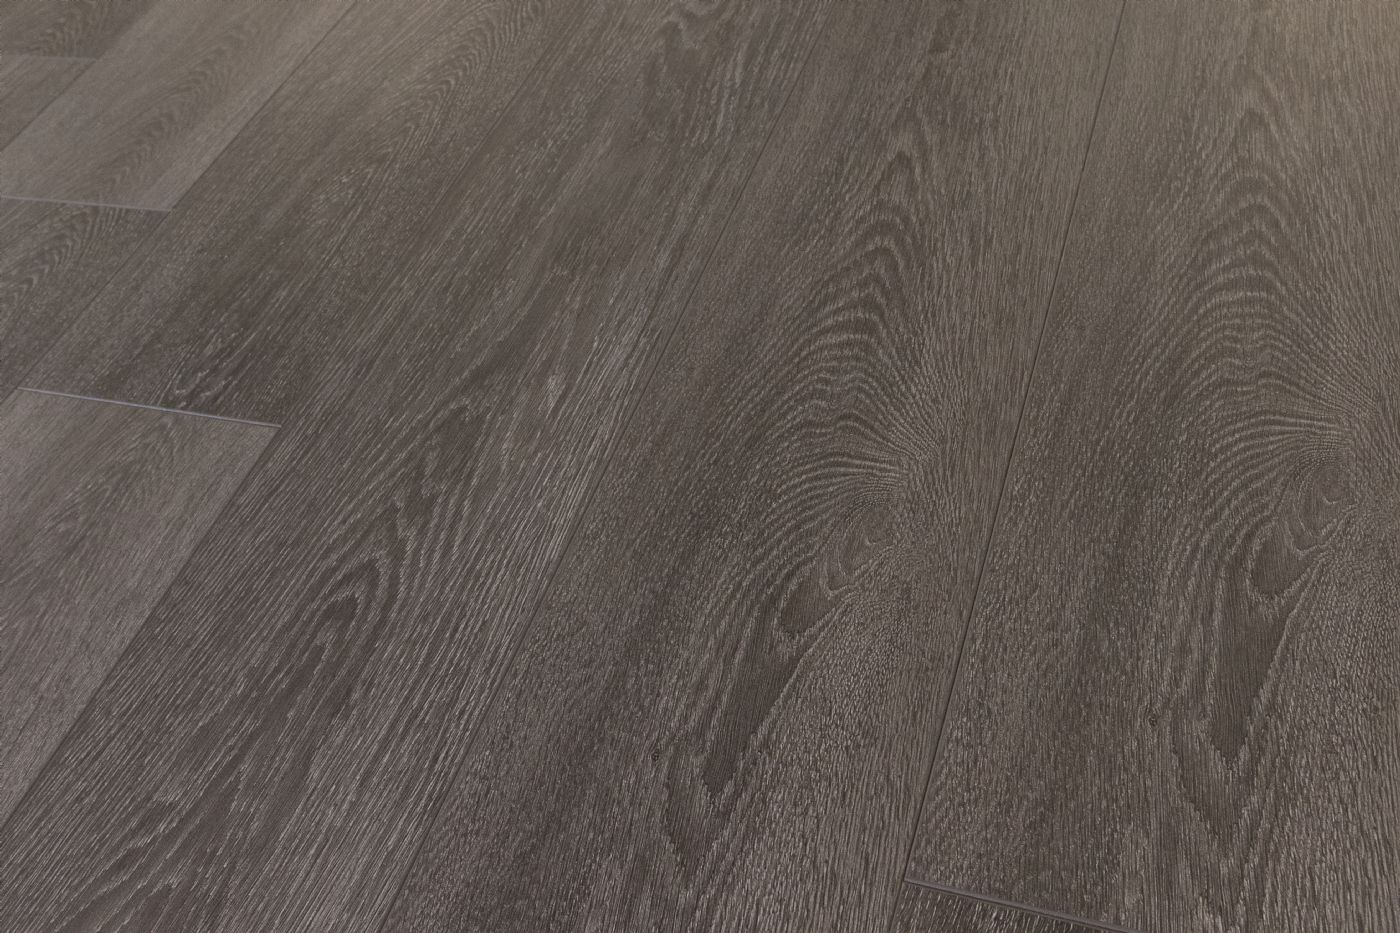 Dove Grey Prestige Laminate Flooring